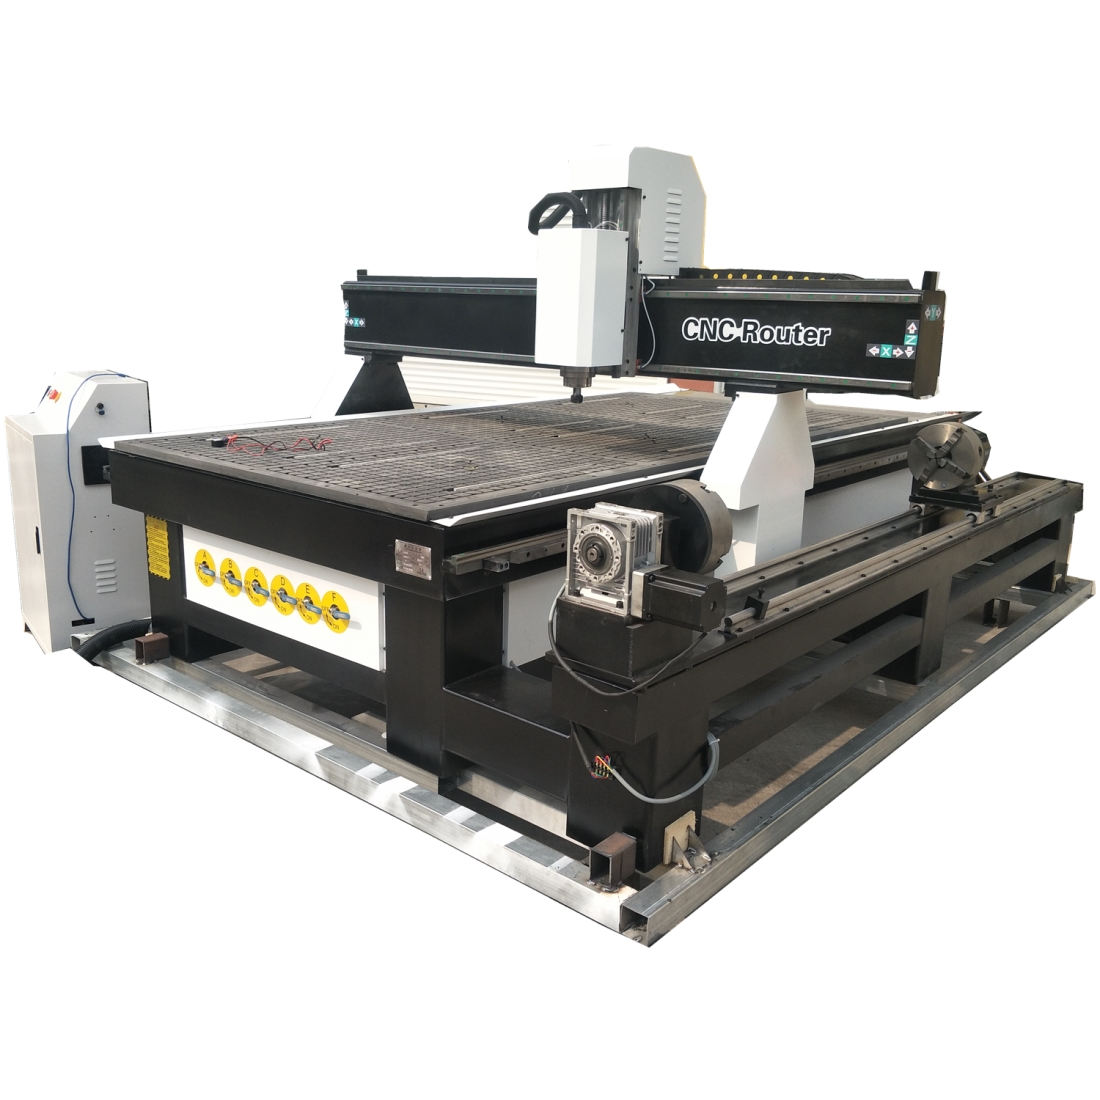 New 1325 Cnc Router With Vacuum Table/atc Cnc Router Machine 4 Axis Cnc Wood Milling Engraving Cnc Router For Bed Kitchen